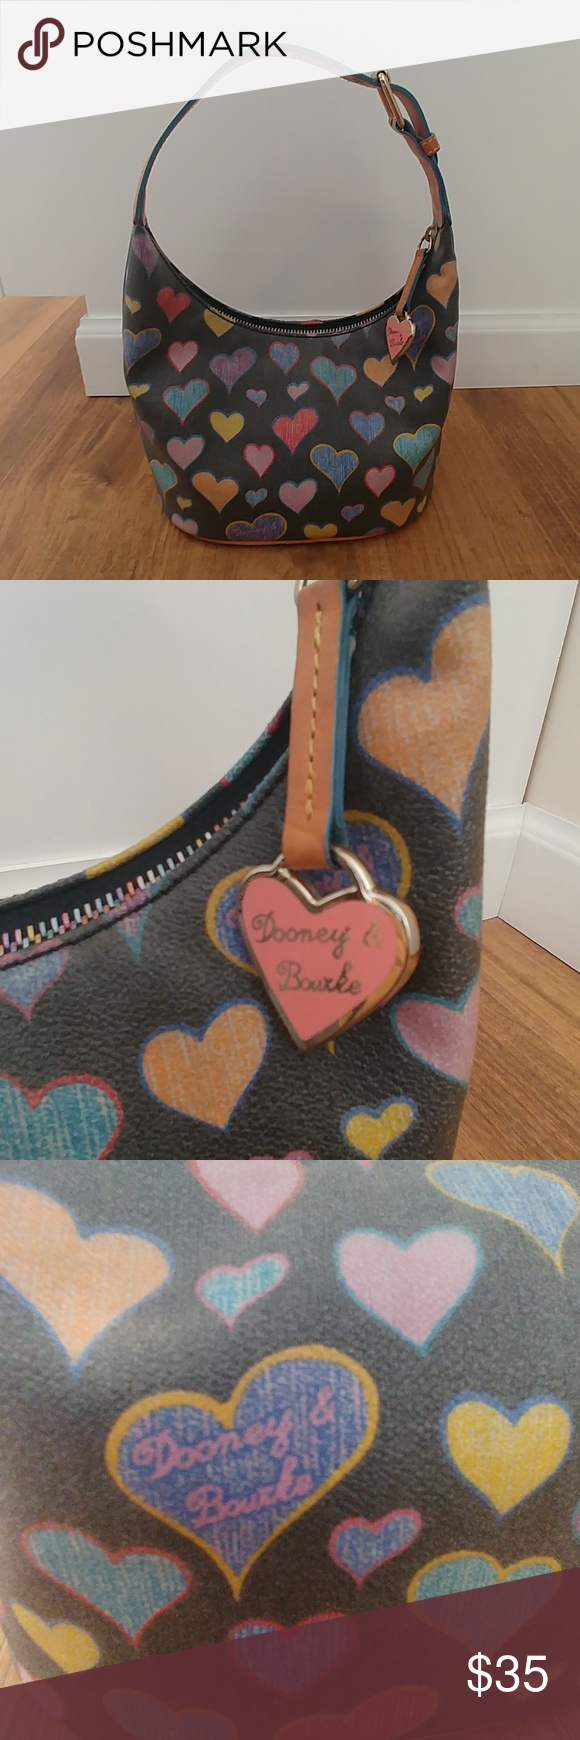 DOONEY & BOURKE Crayon Hearts Handbag  DOONEY & BOURKE Crayon Hearts Handbag #crayonheart DOONEY & BOURKE Crayon Hearts Handbag  DOONEY & BOURKE Crayon Hearts Handbag #crayonheart